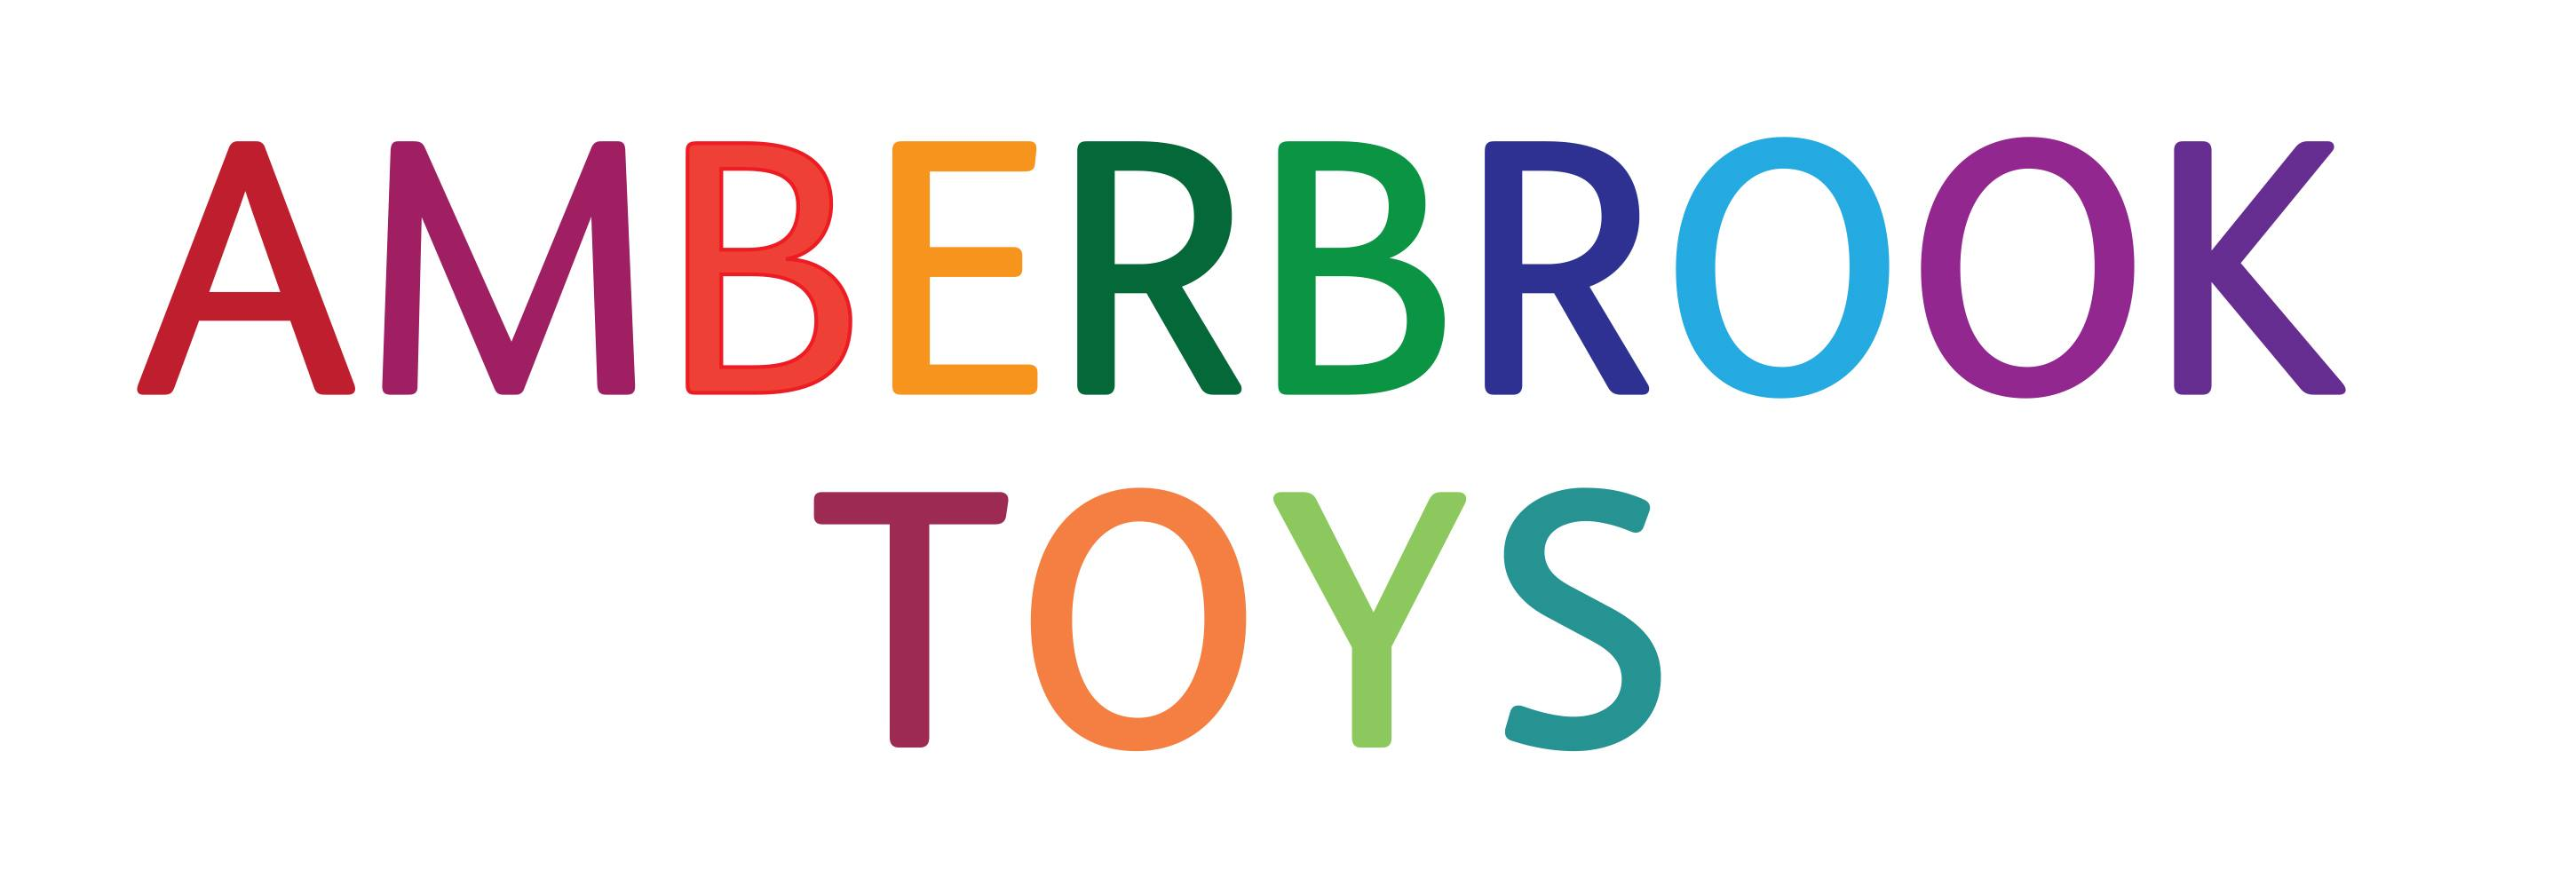 Amberbrook Toys exclusive distributor in Malaysia for Djeco, Brainbox Games, Educational Insights, Learning Resources